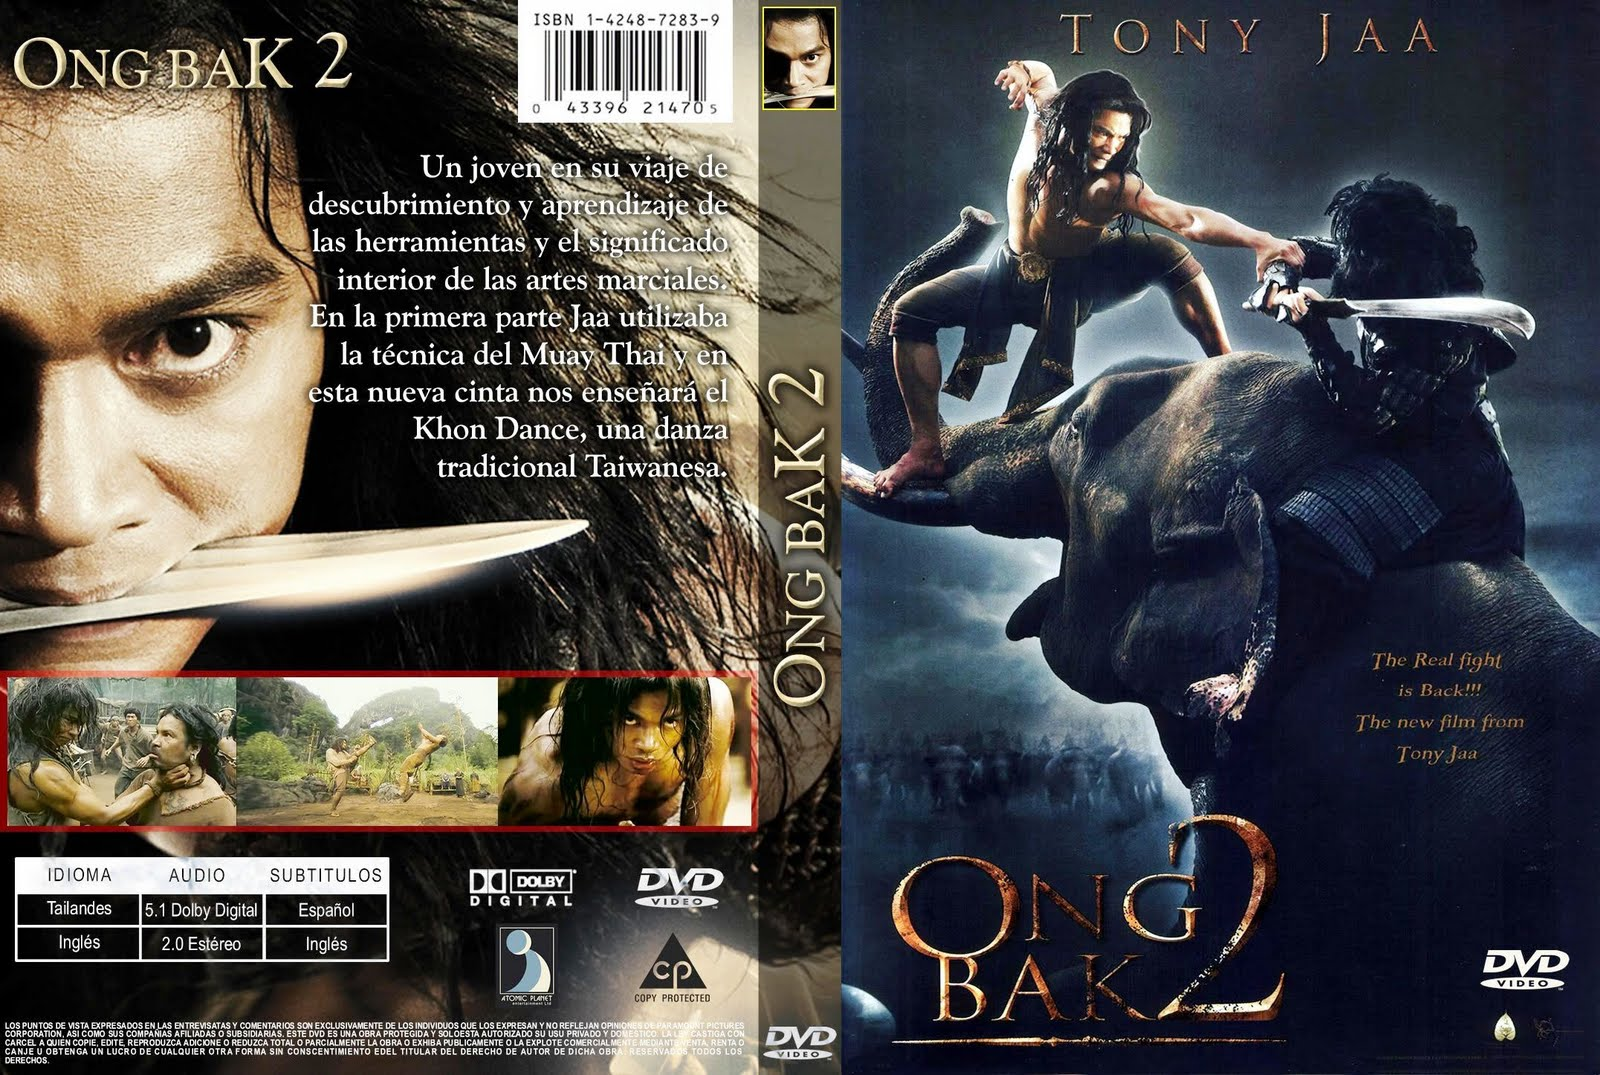 Download All Movie The Hart Movie Ong Bak 2